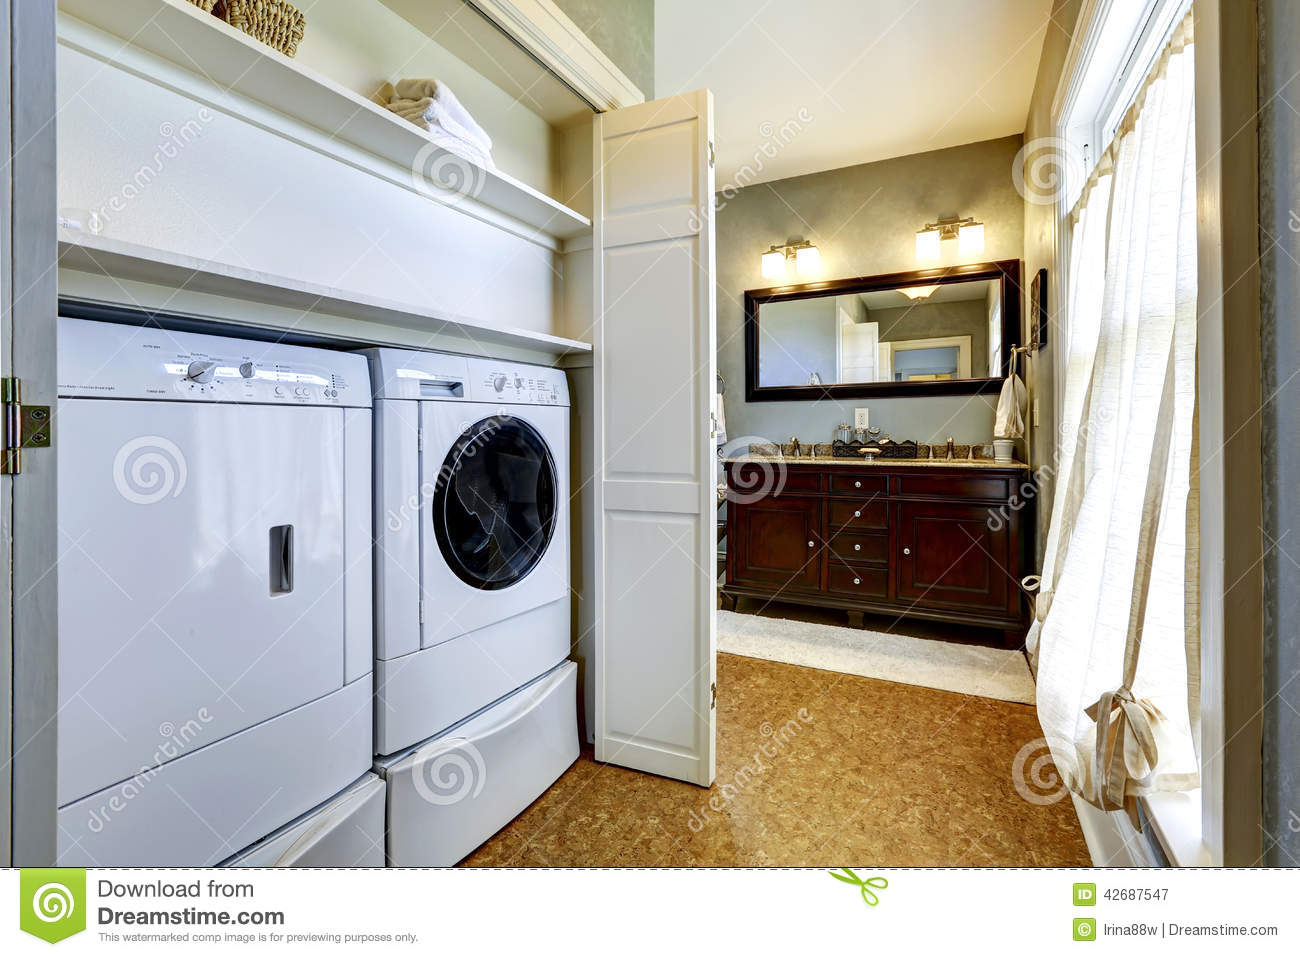 Light grey hallway with built-in washer and dryer